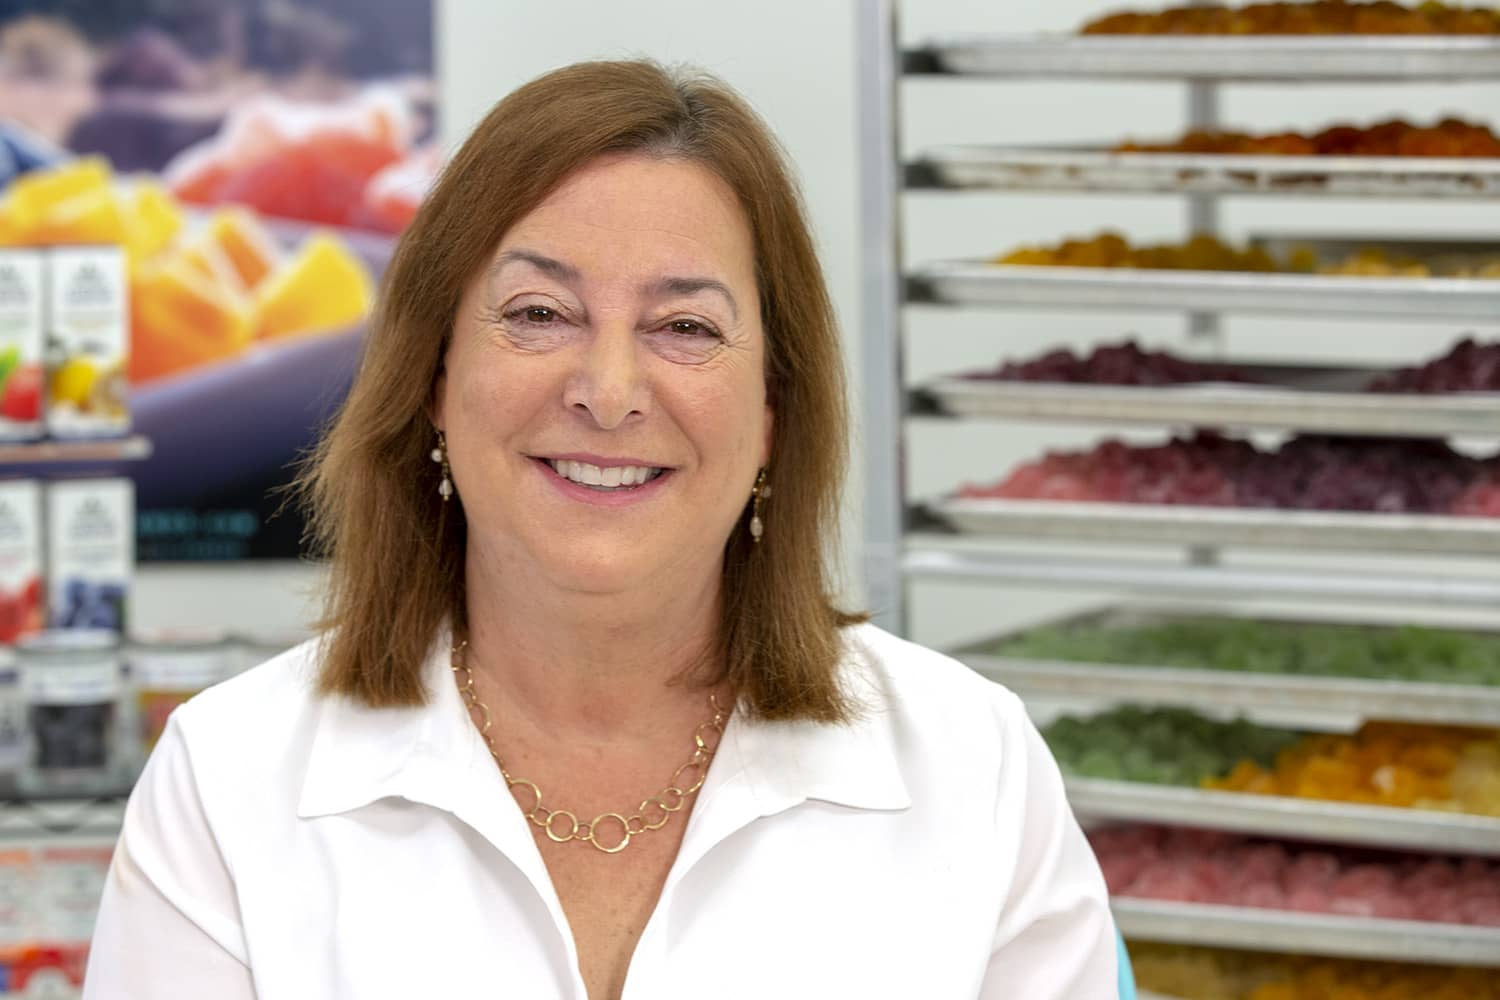 This 60-year-old with an MBA now brings in millions selling cannabis candies